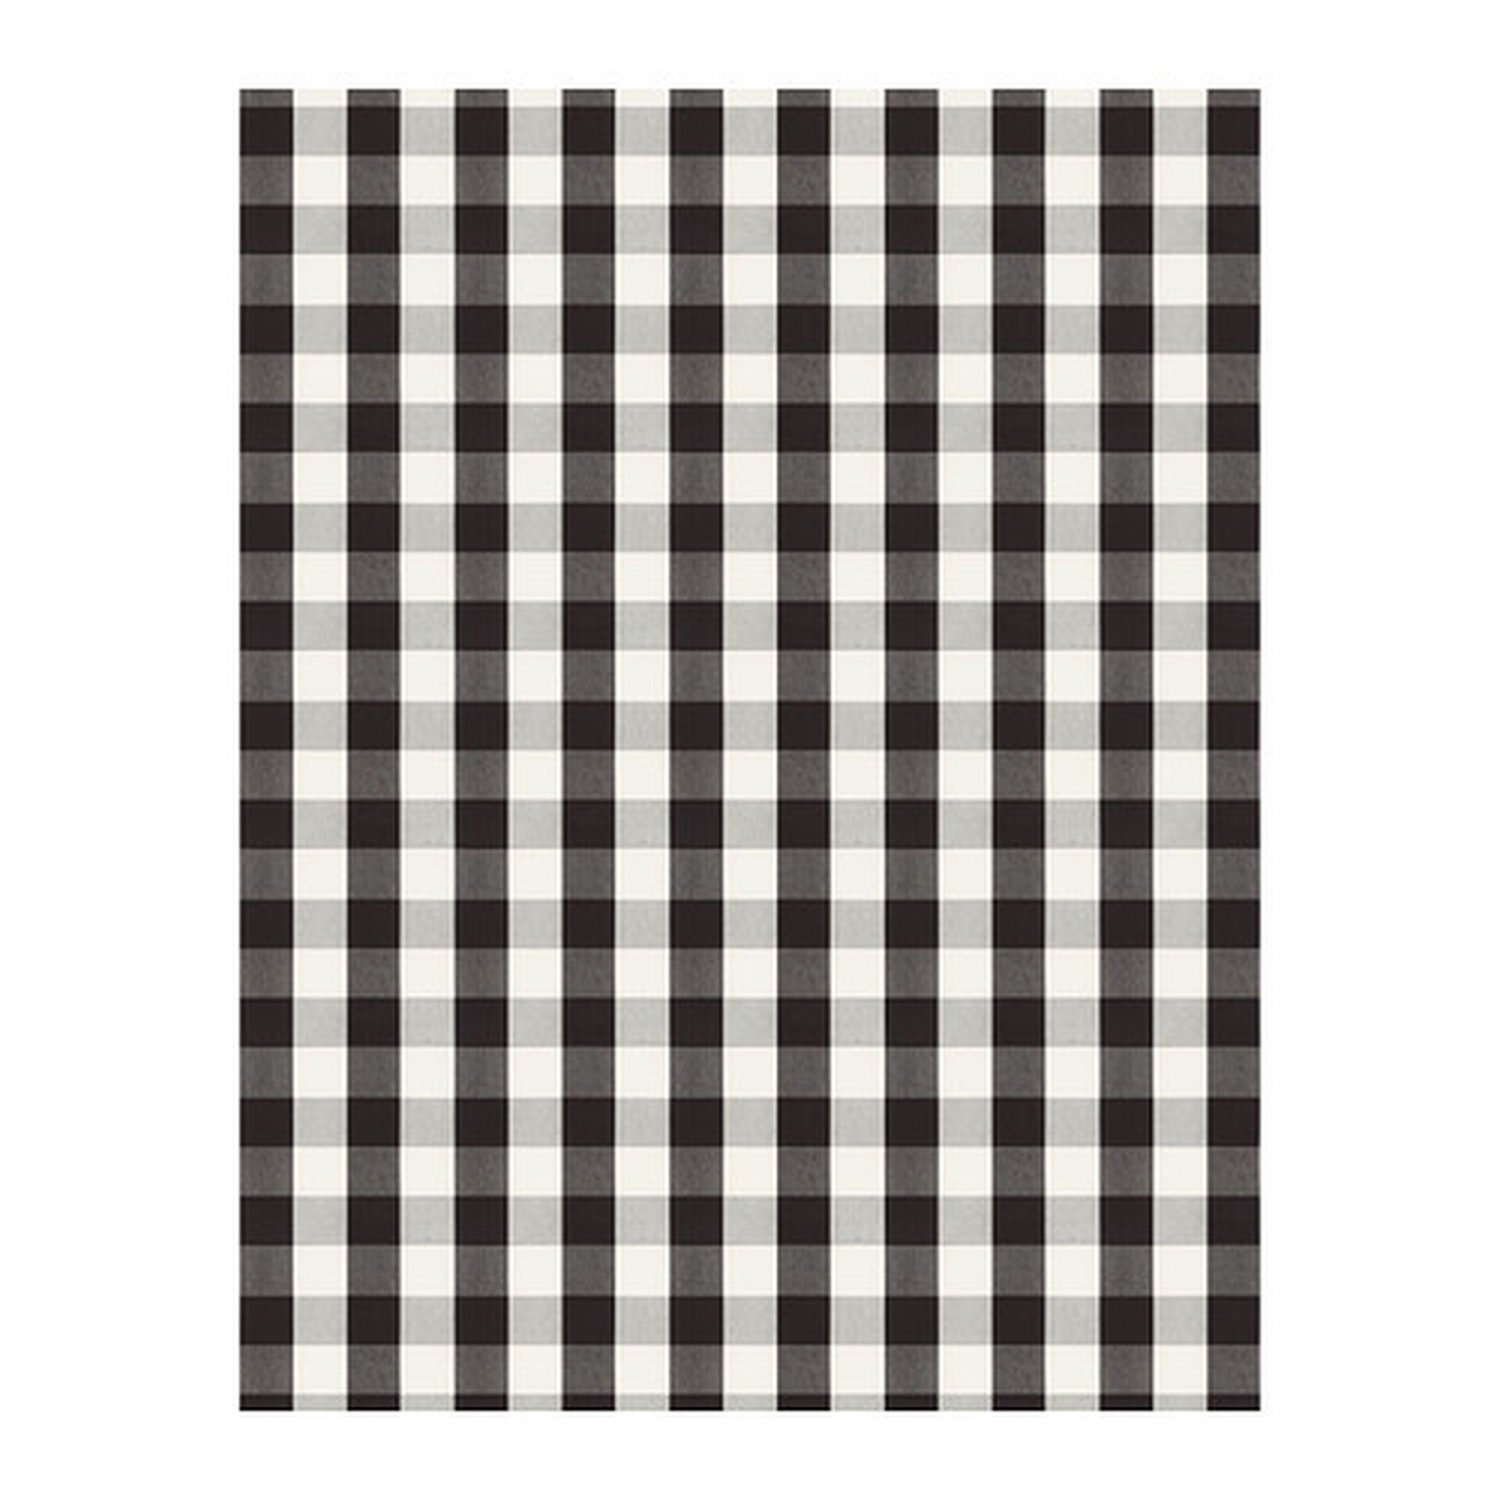 ikea berta ruta fabric material buffalo check black white